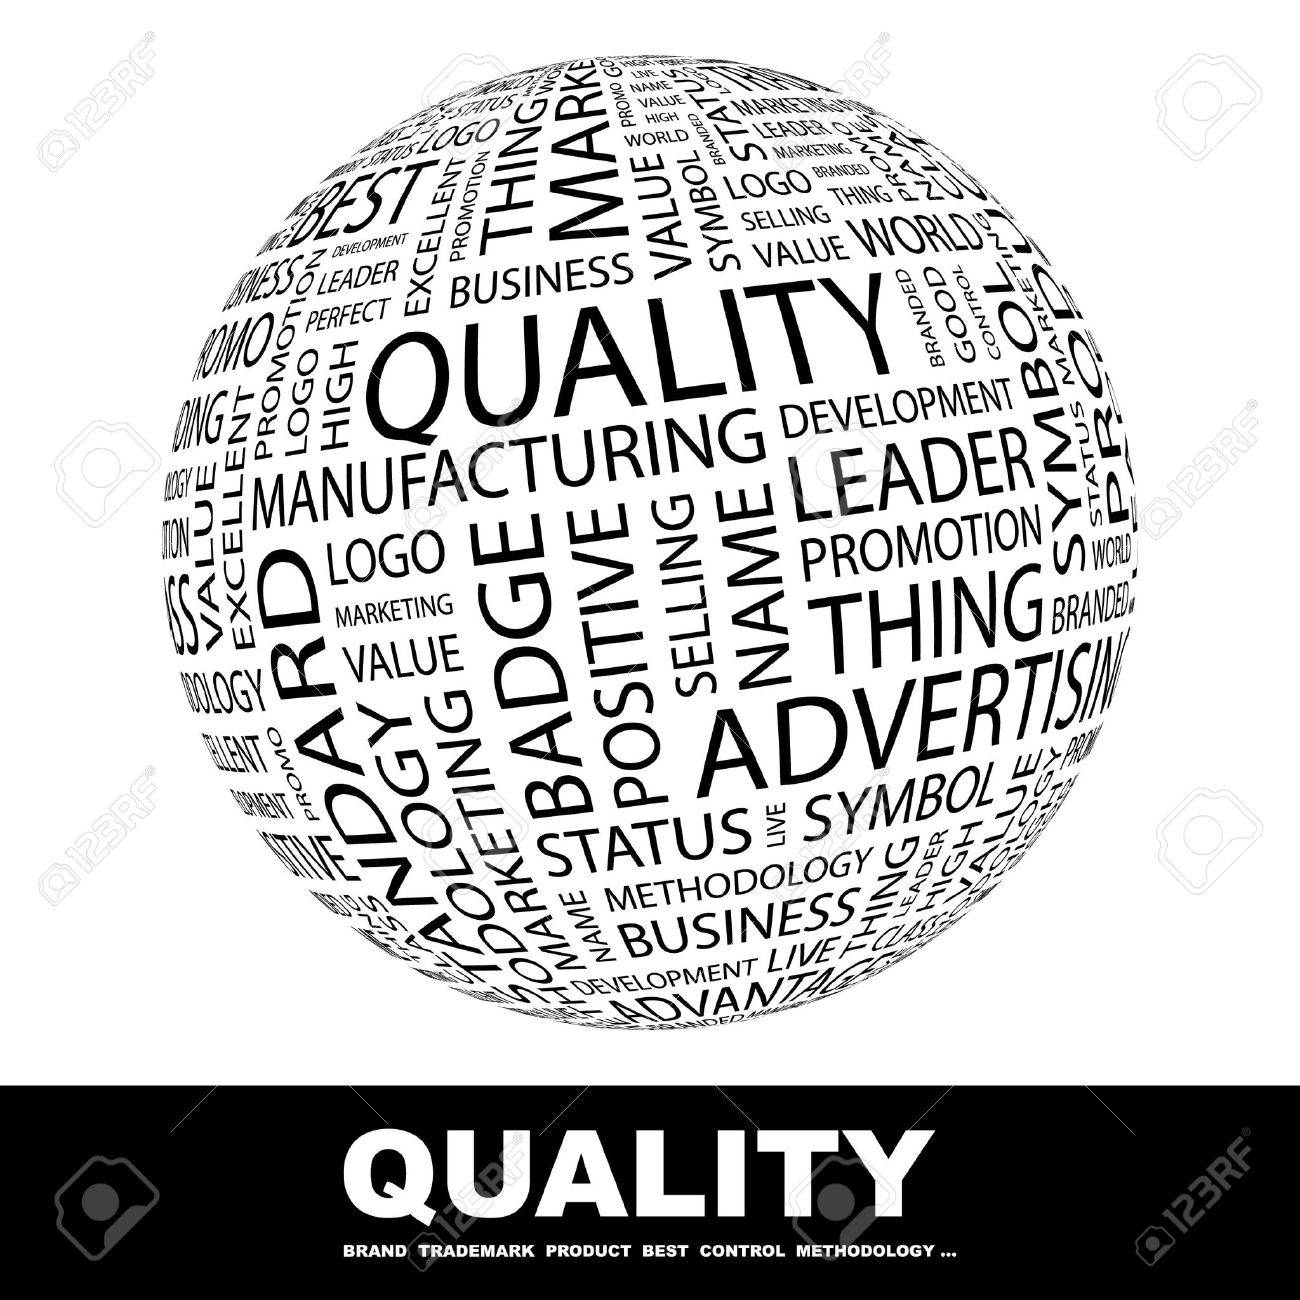 QUALITY. Globe with different association terms. Collage with word cloud. Stock Photo - 7995136